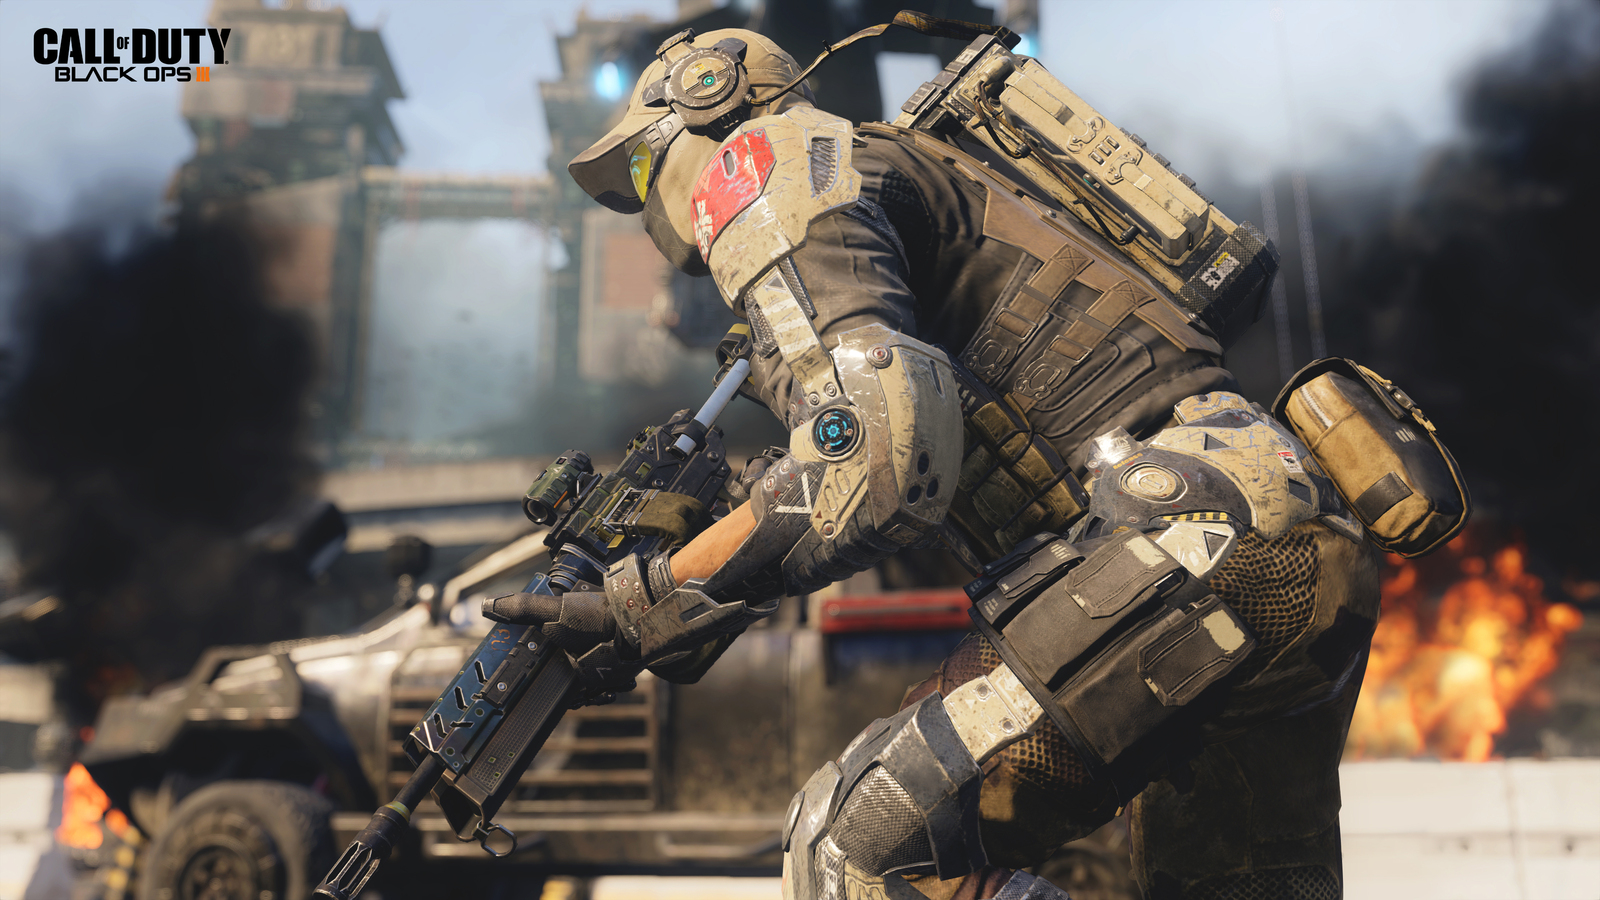 Call of Duty: Black Ops III for Xbox One image